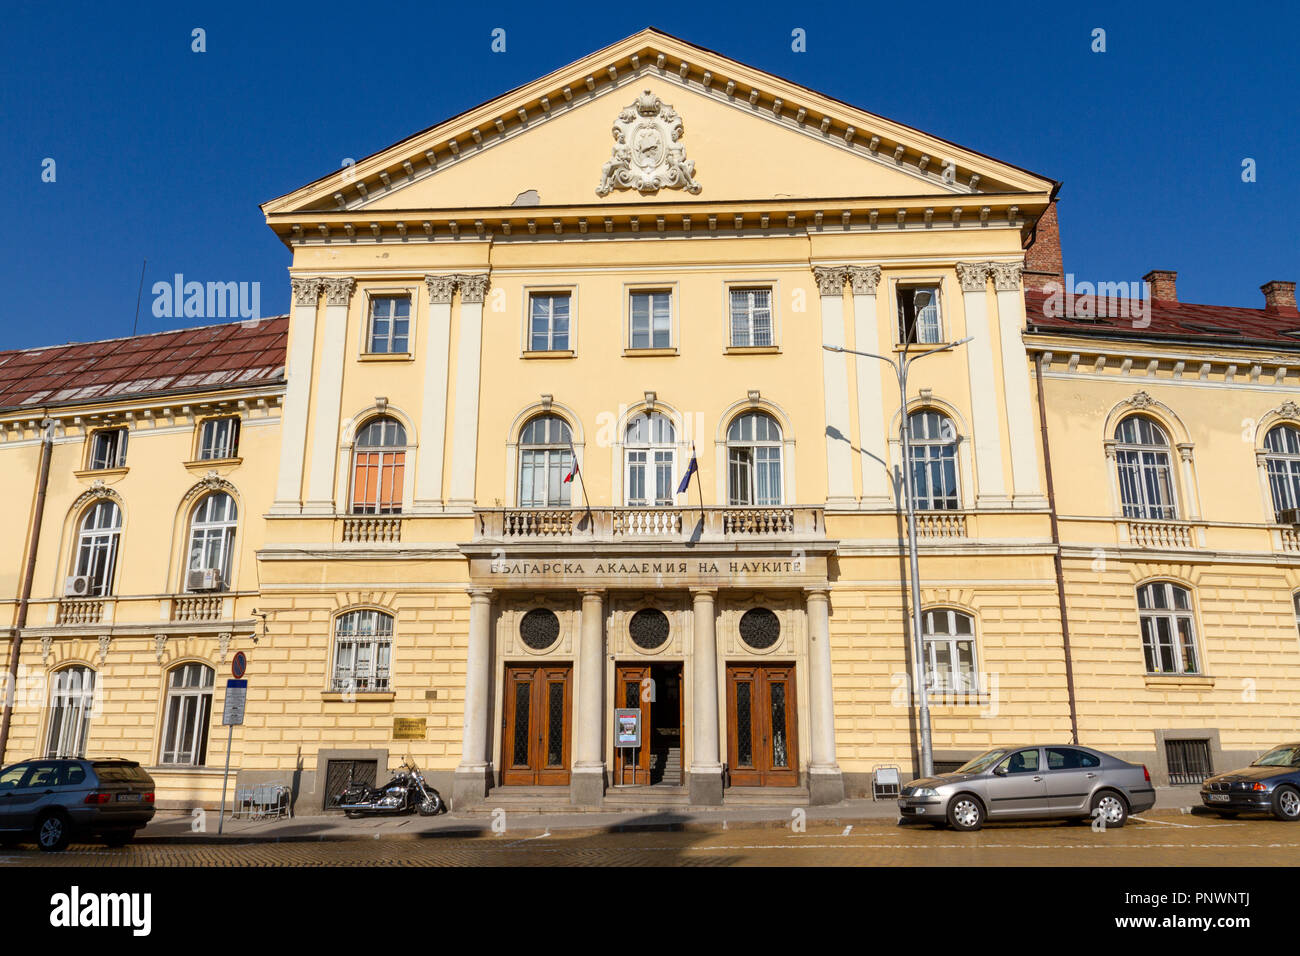 The beautiful Library of Bulgarian Academy of Sciences in Sofia, Bulgaria. - Stock Image